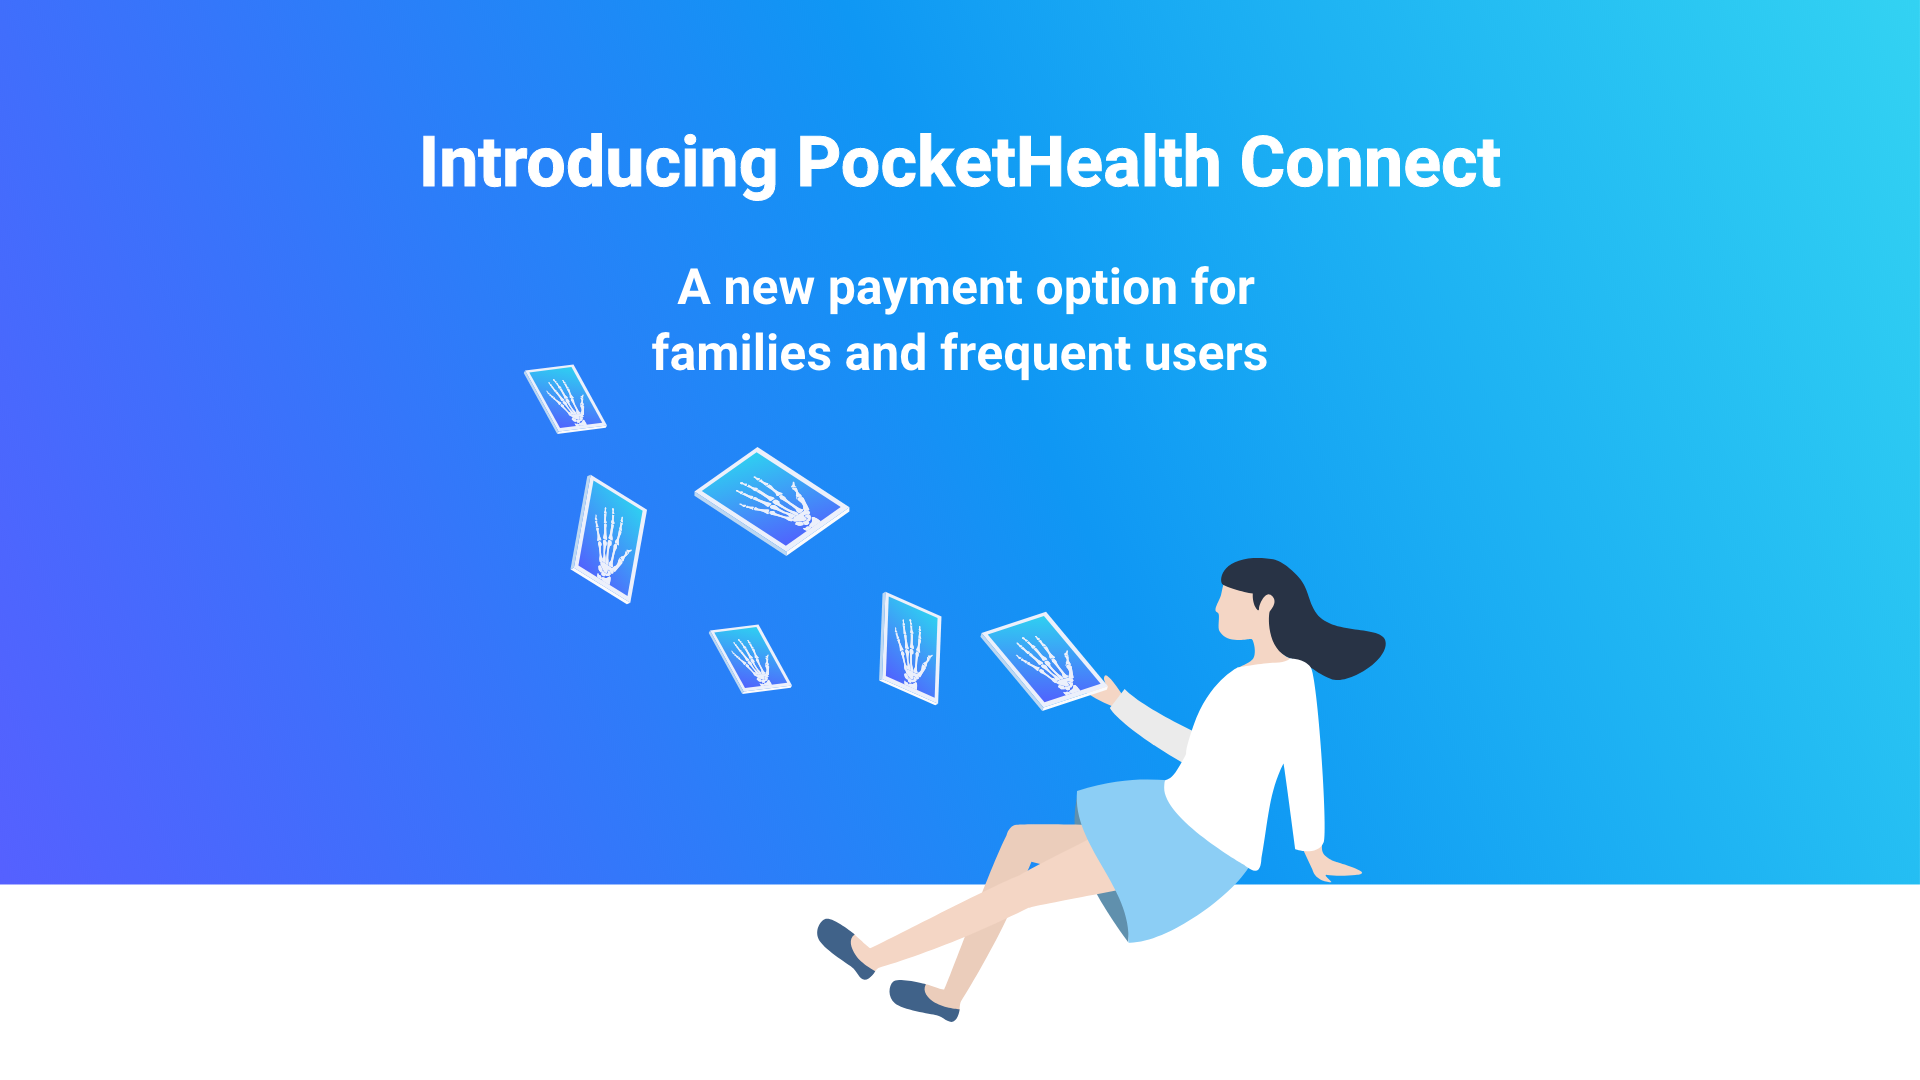 Introducing PocketHealth Connect!